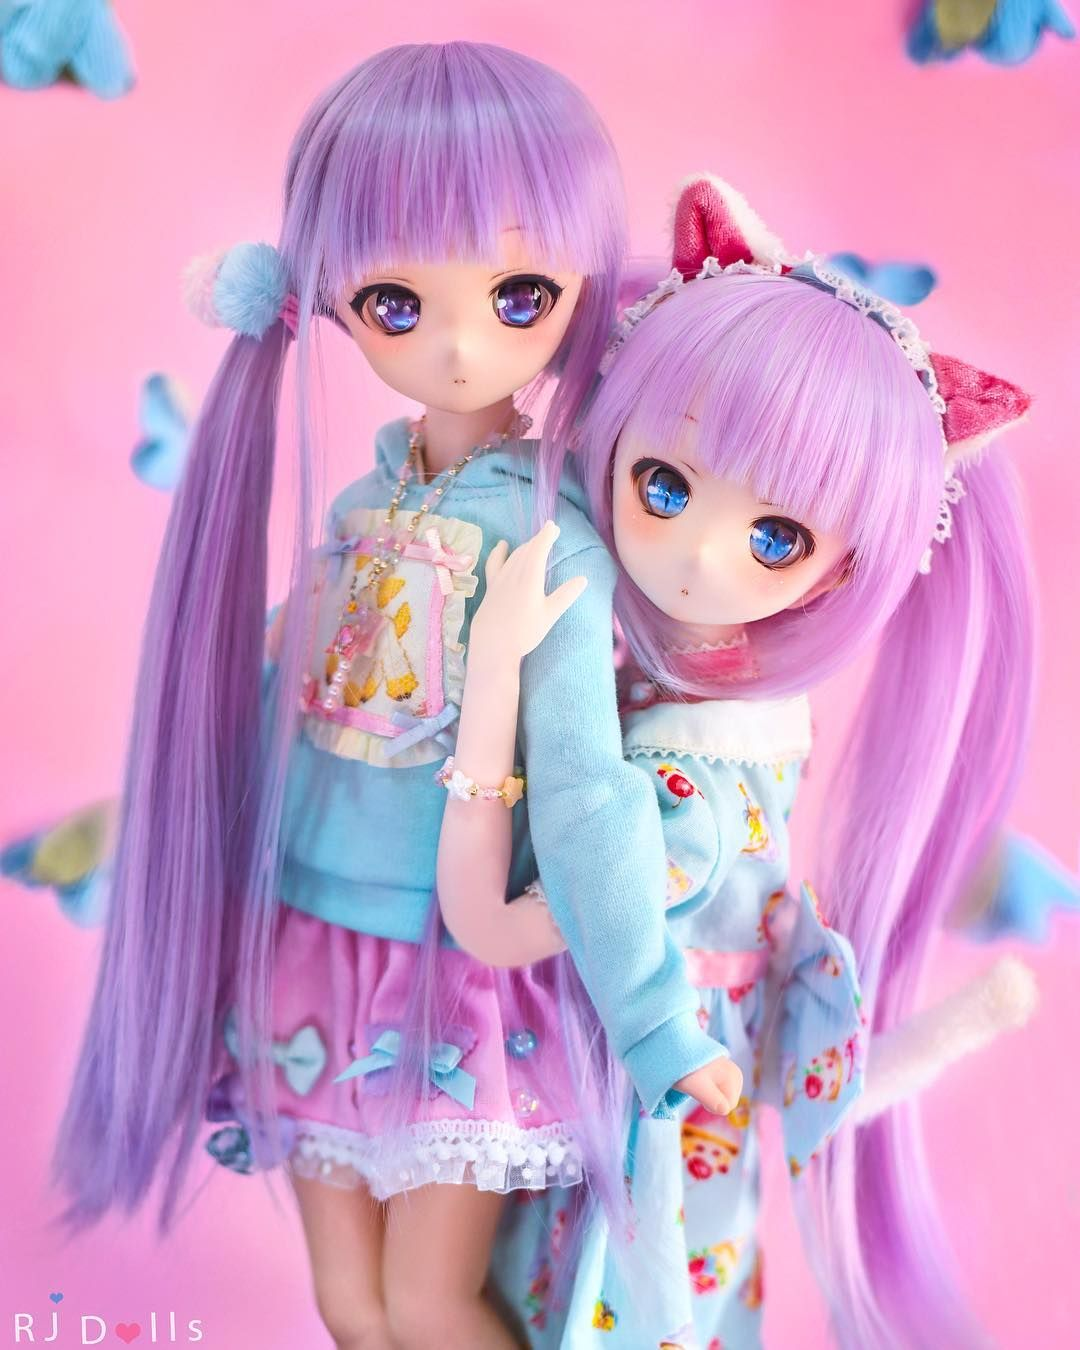 Sandy Candy The Pastel Sisters ᗜ Candy Is Showing How An Adorable Cat She Is She Has A Cat Ears And Also A Tail Cute Dolls Anime Dolls Beautiful Dolls